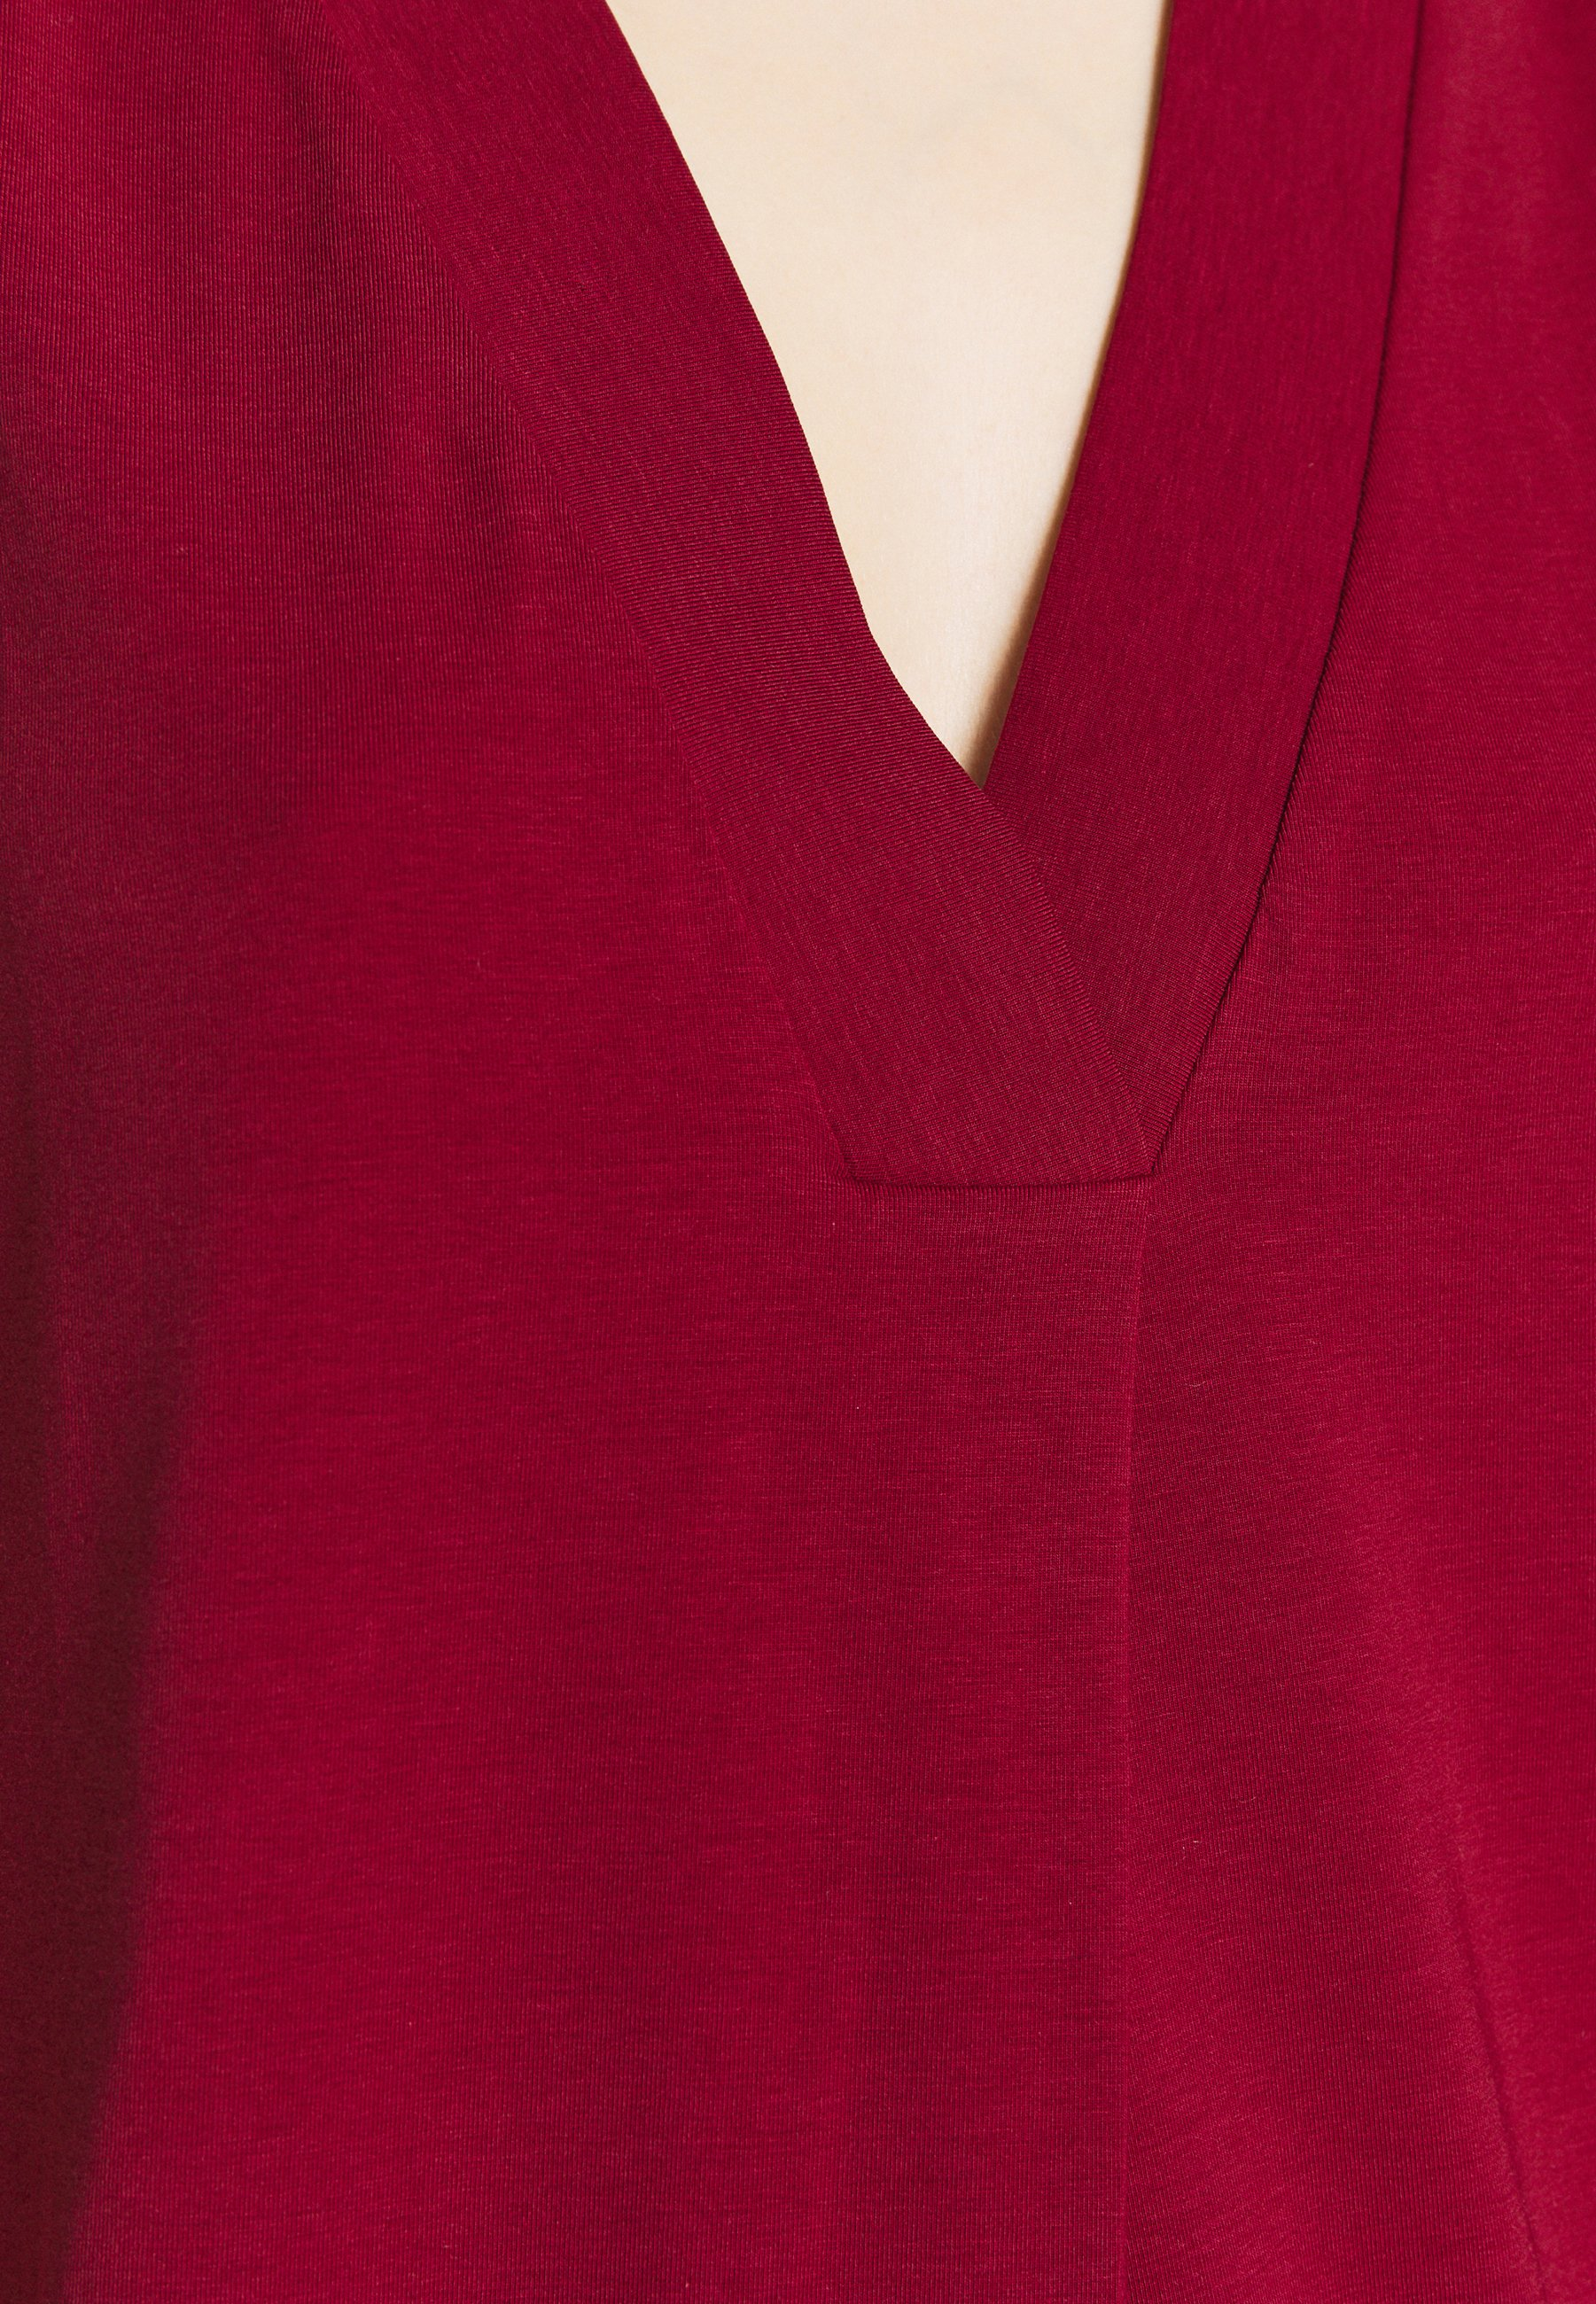 WEEKEND MaxMara Topper - bordeaux